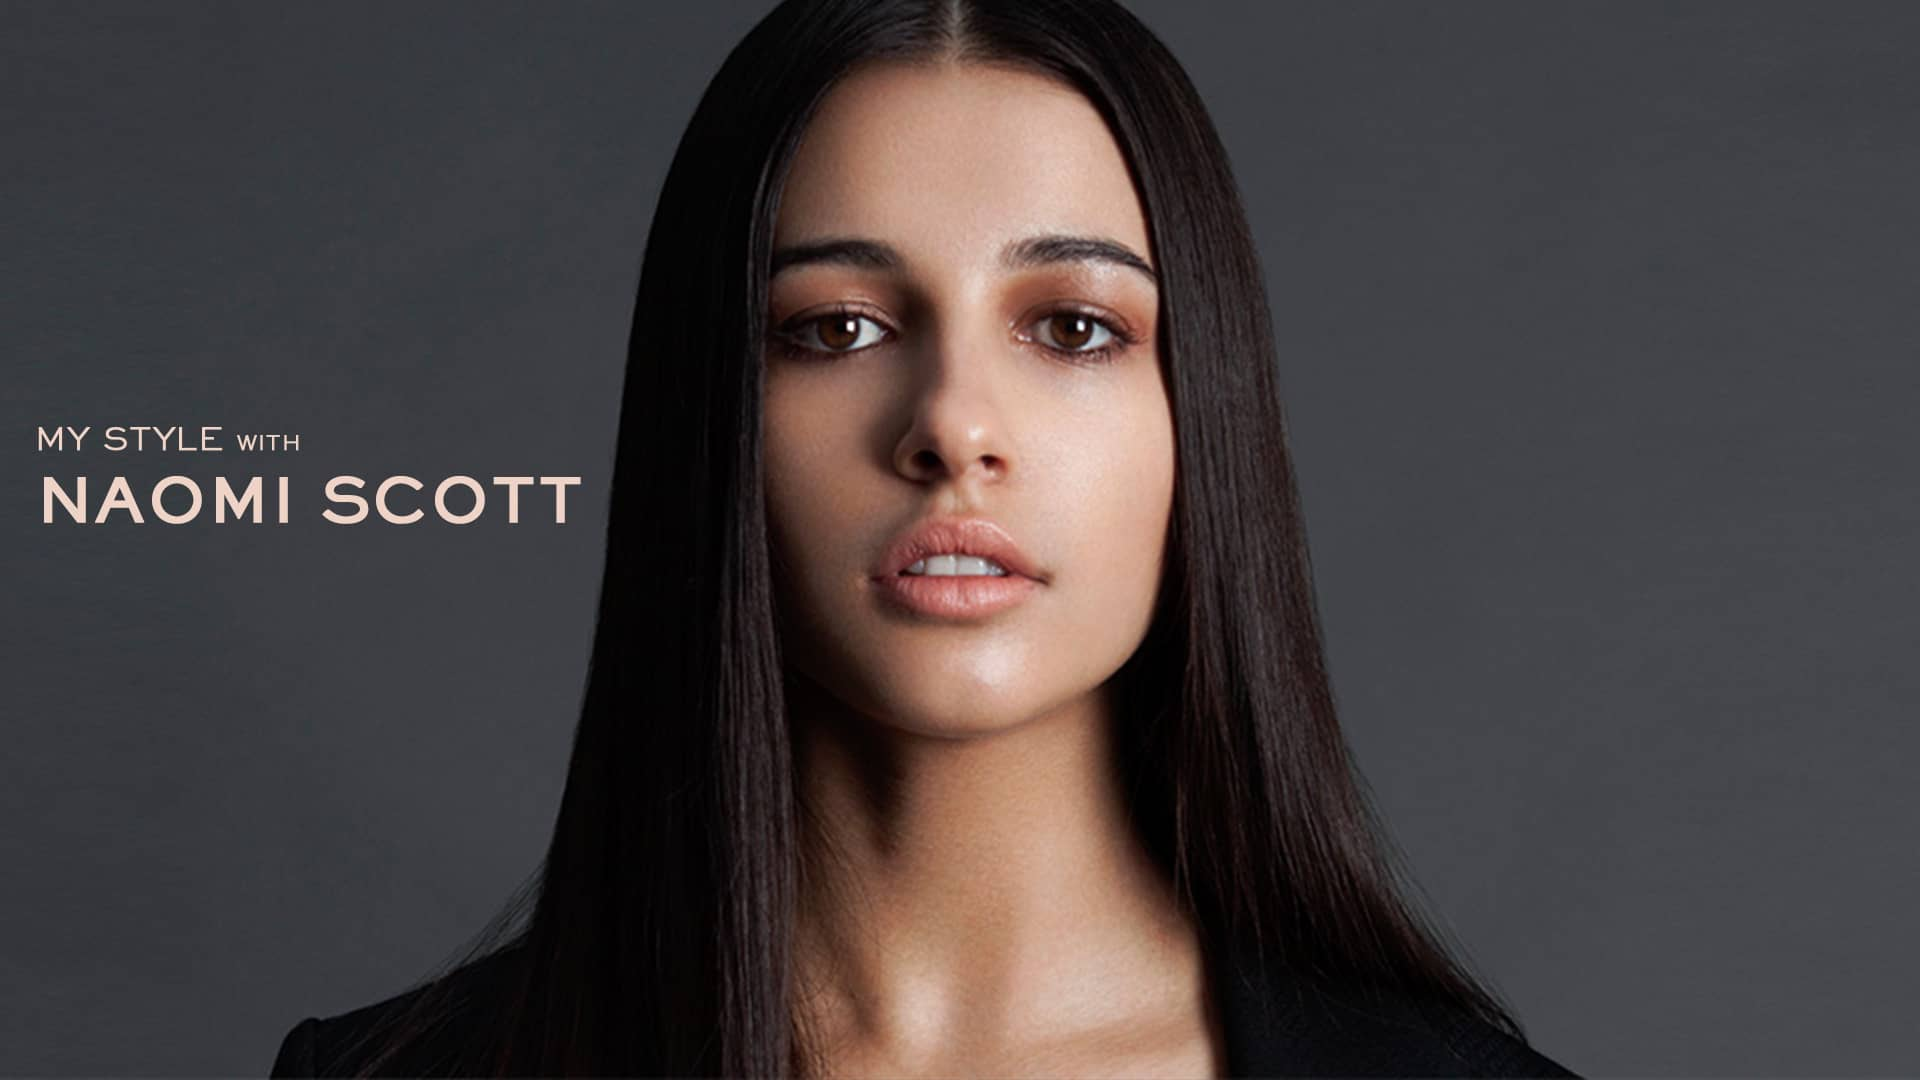 naomi scott wallpapers images photos pictures backgrounds